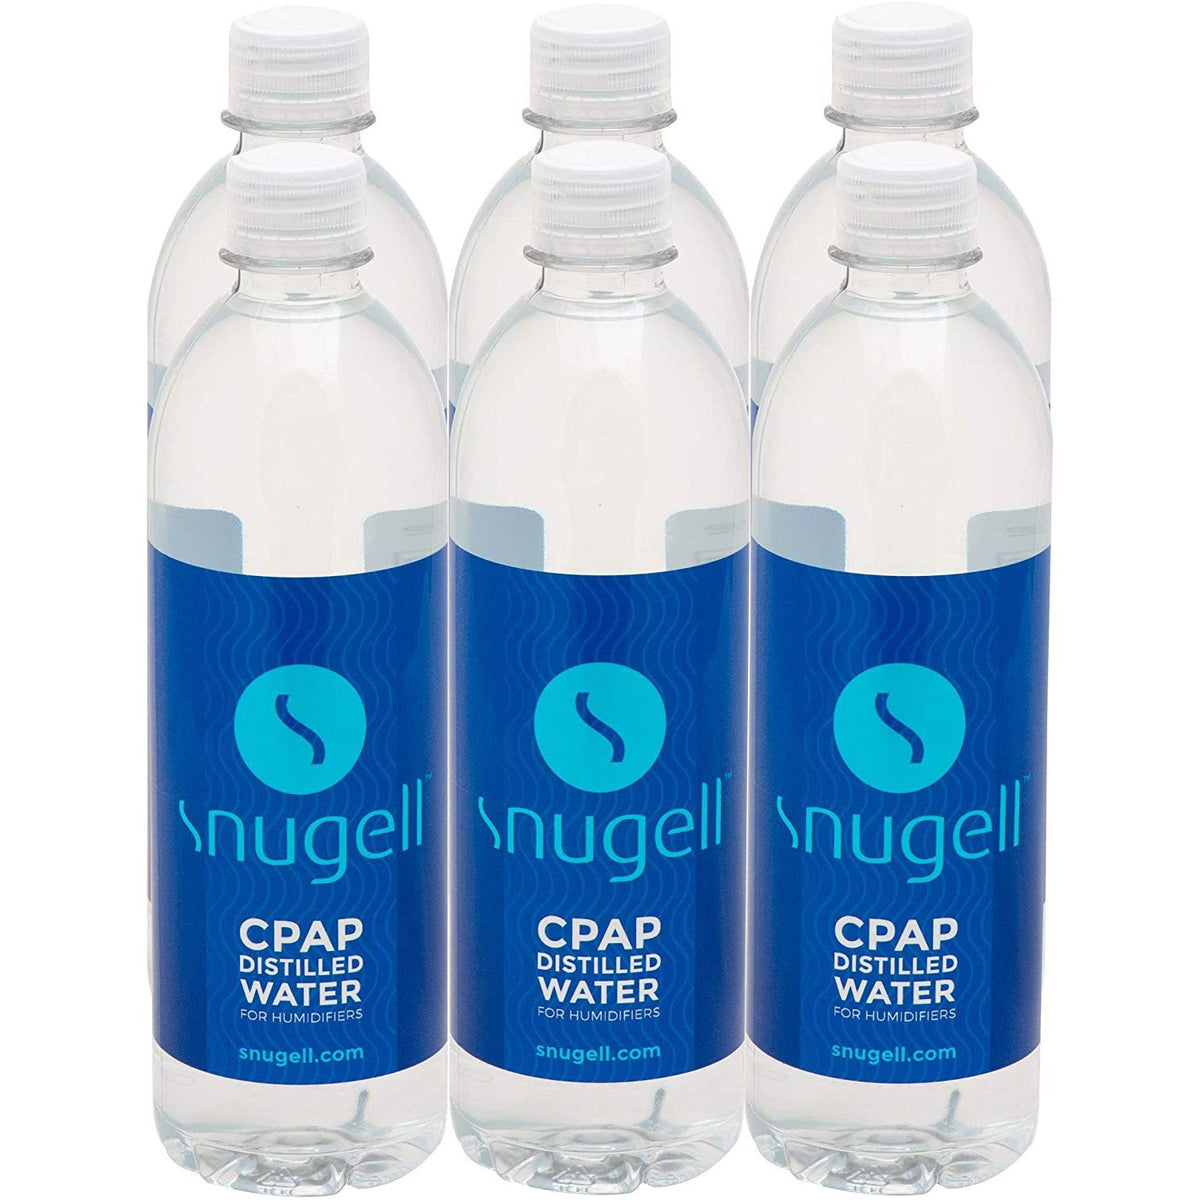 Snugell Distilled Water 6 pack.